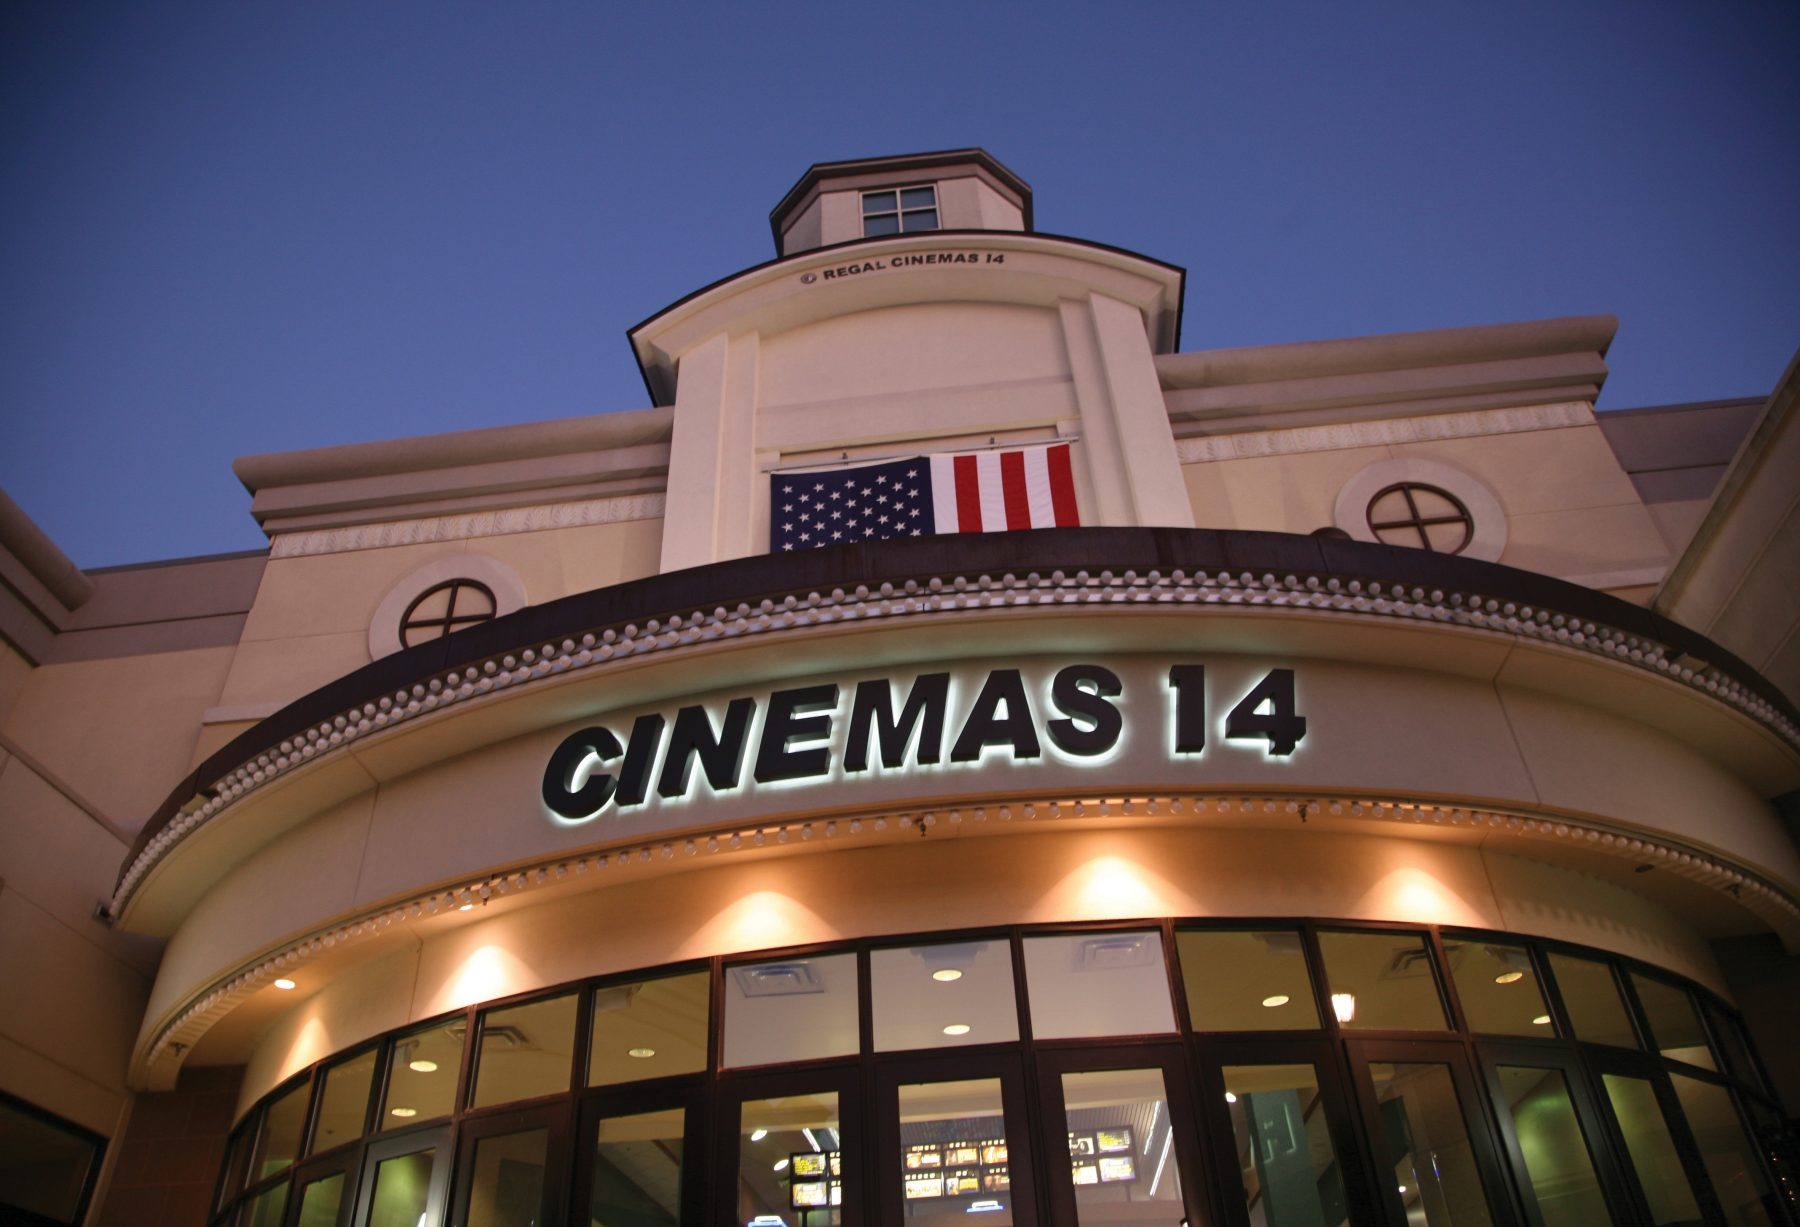 Regal Cinemas North Hills Stadium 14 - North Hills